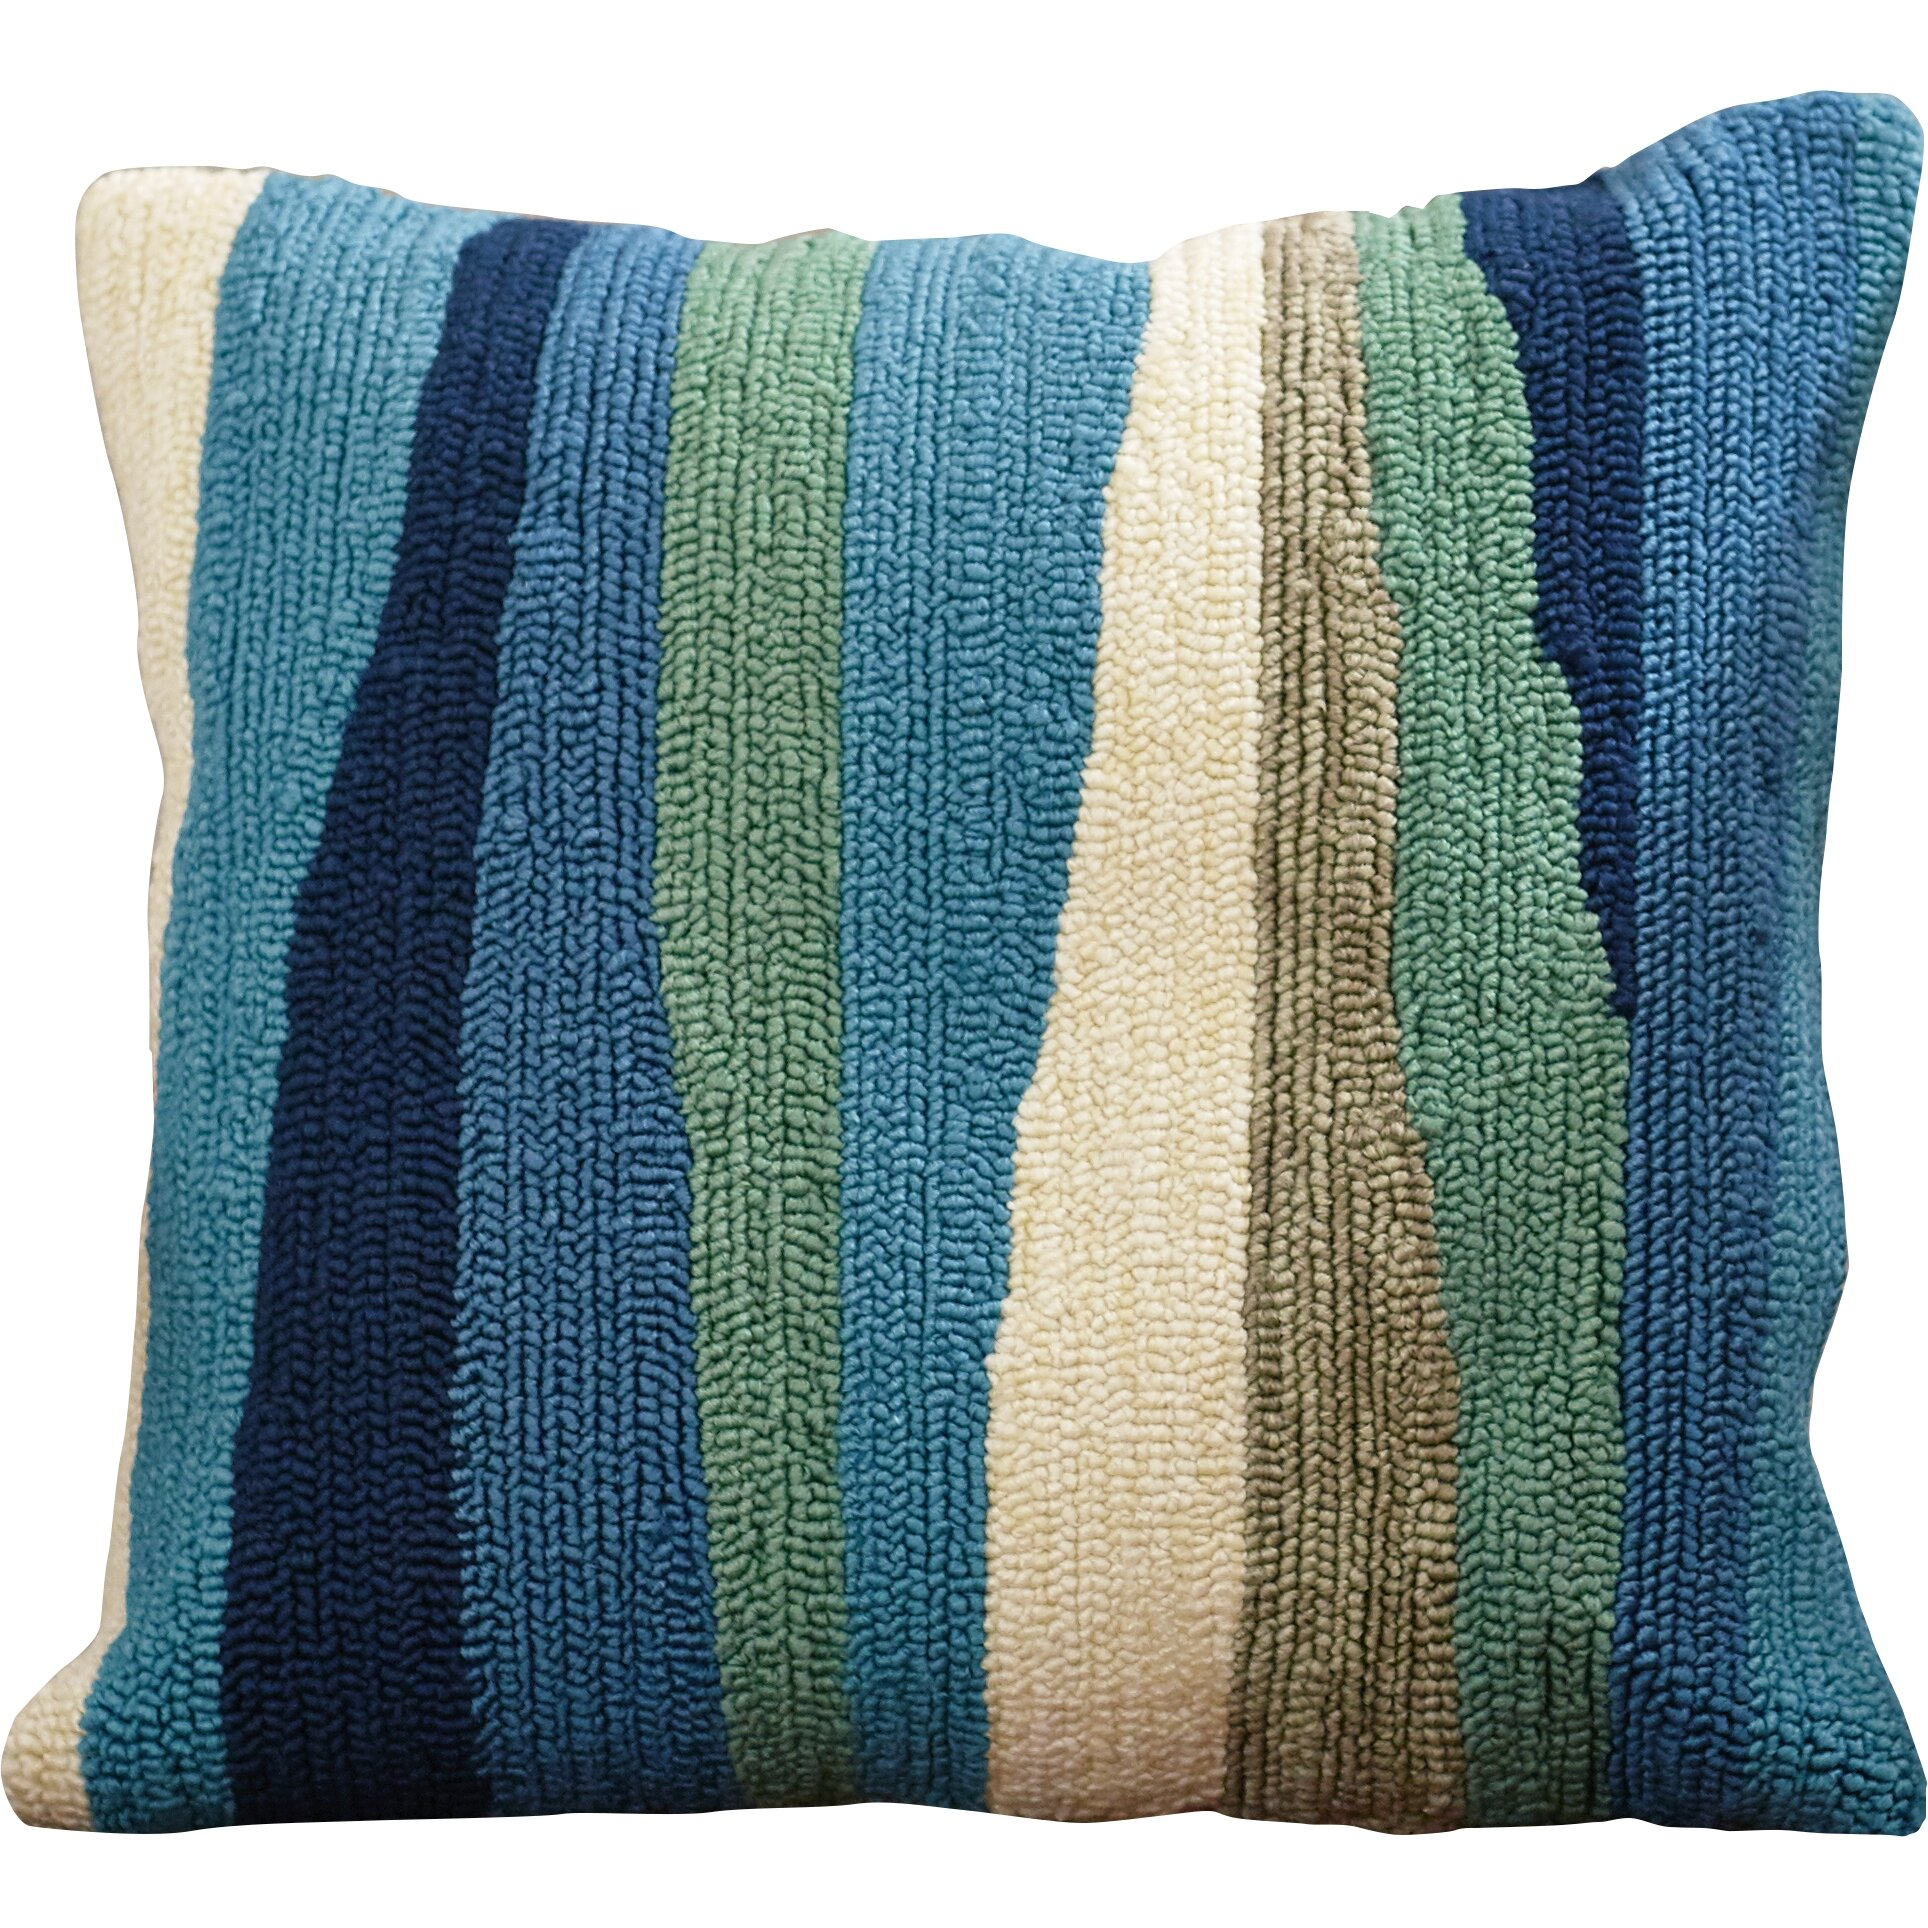 Throw Pillows In Abuja : Beachcrest Home Belfort Ocean Abstract Decorative Indoor/Outdoor Throw Pillow & Reviews Wayfair